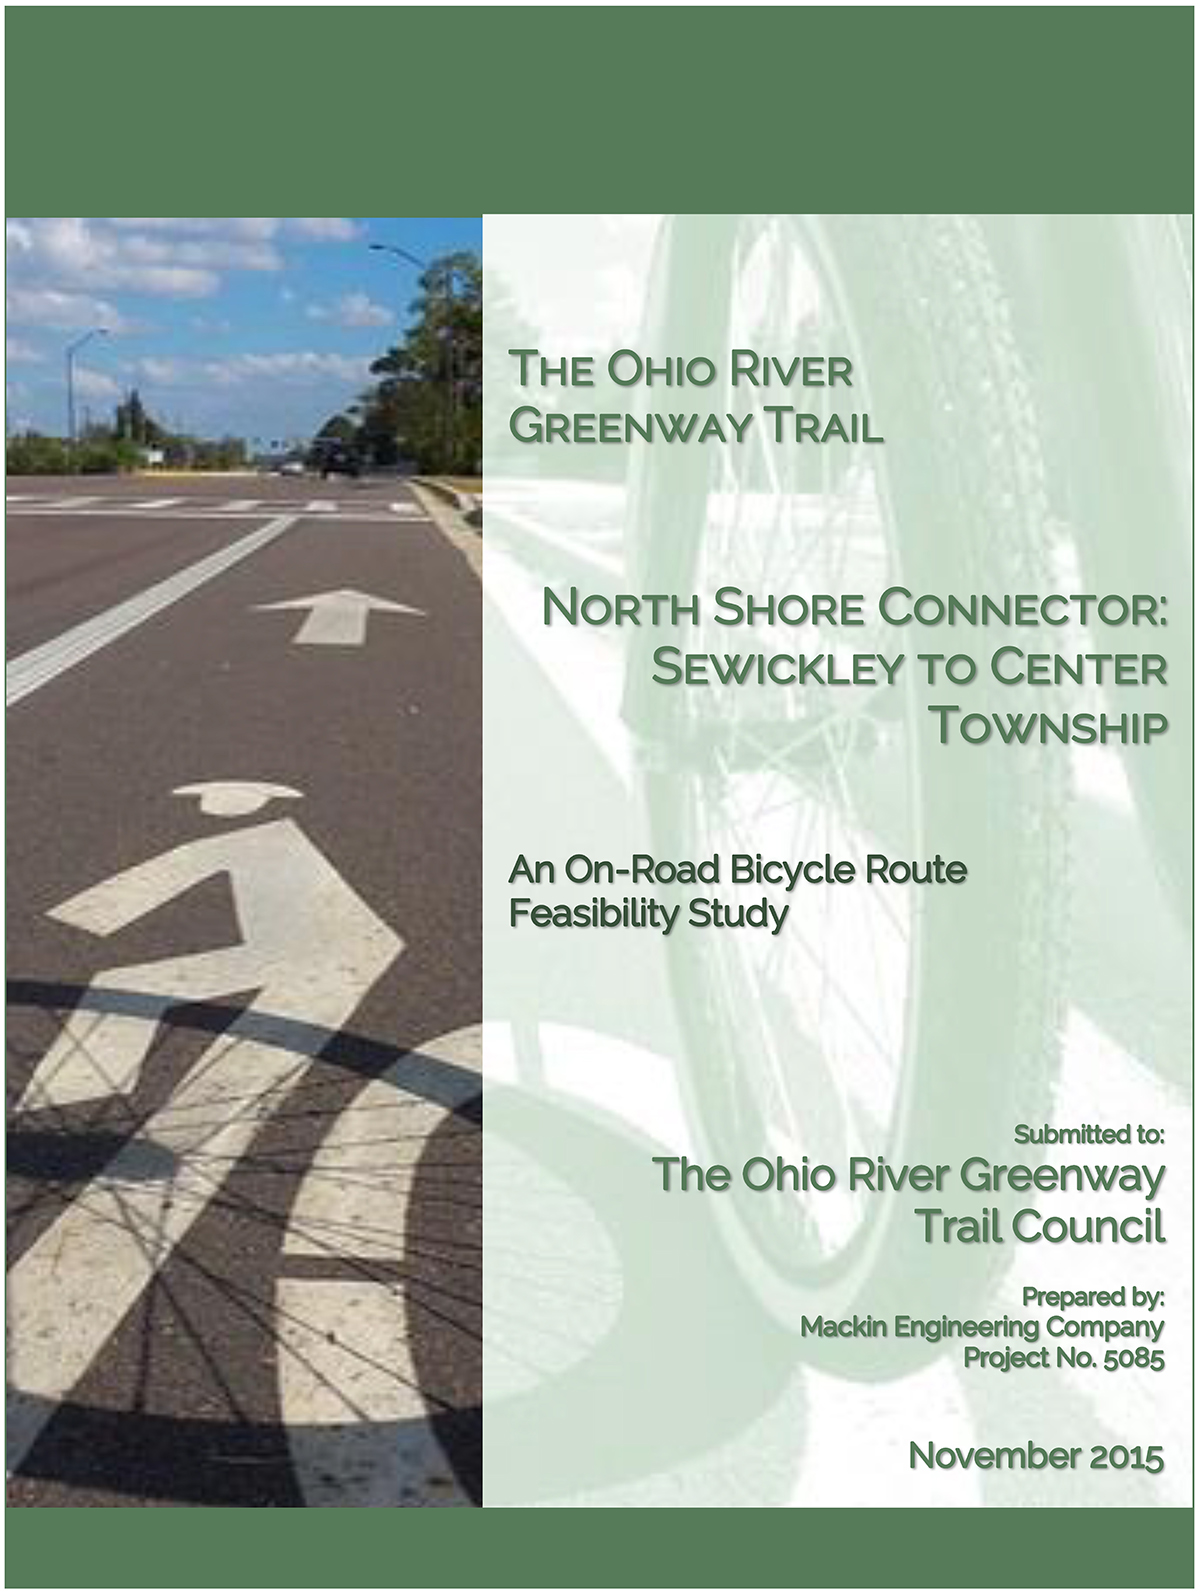 North Shore Connector Feasibility Study